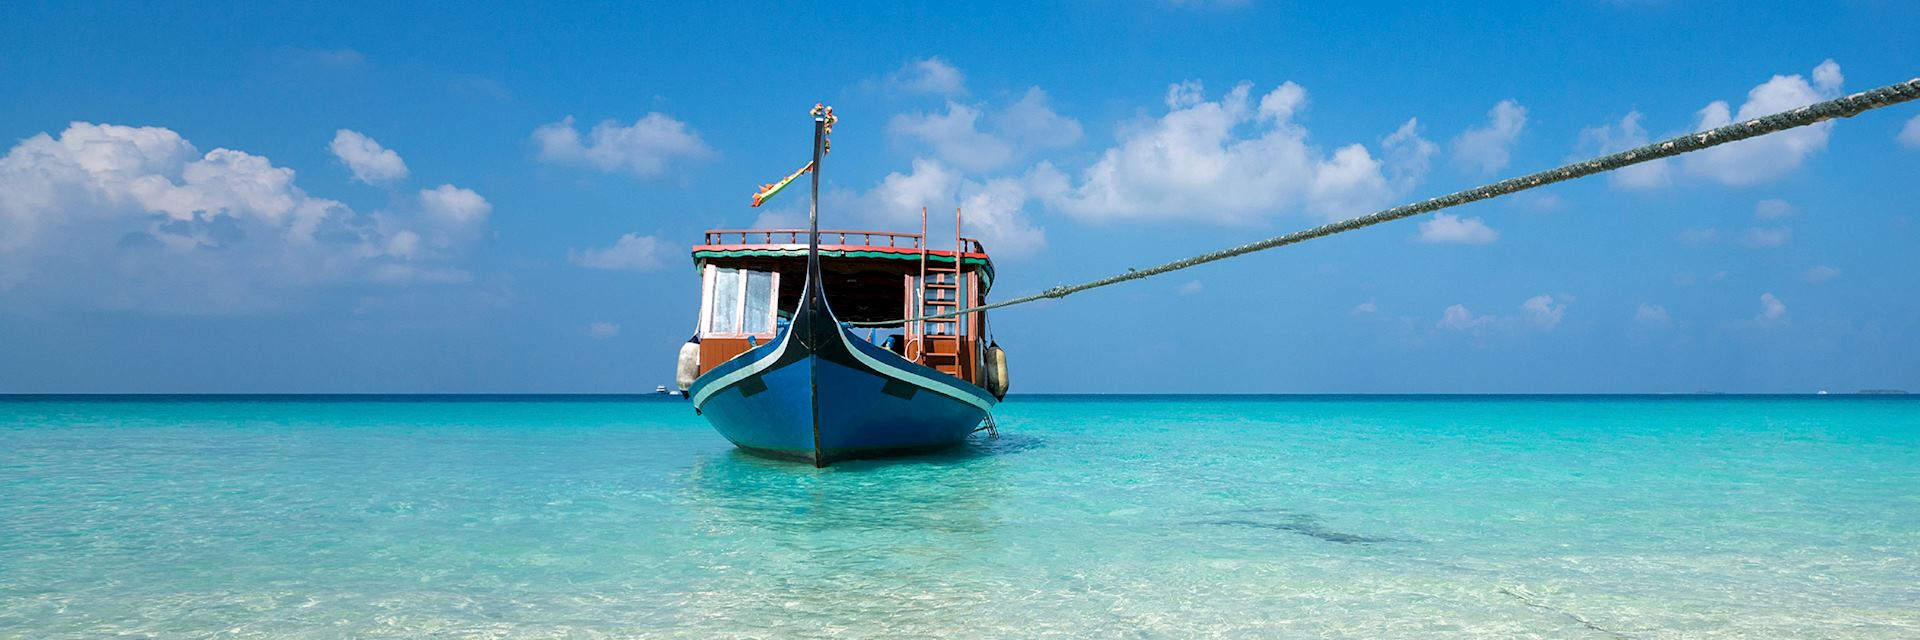 Fishing boat, the Maldives